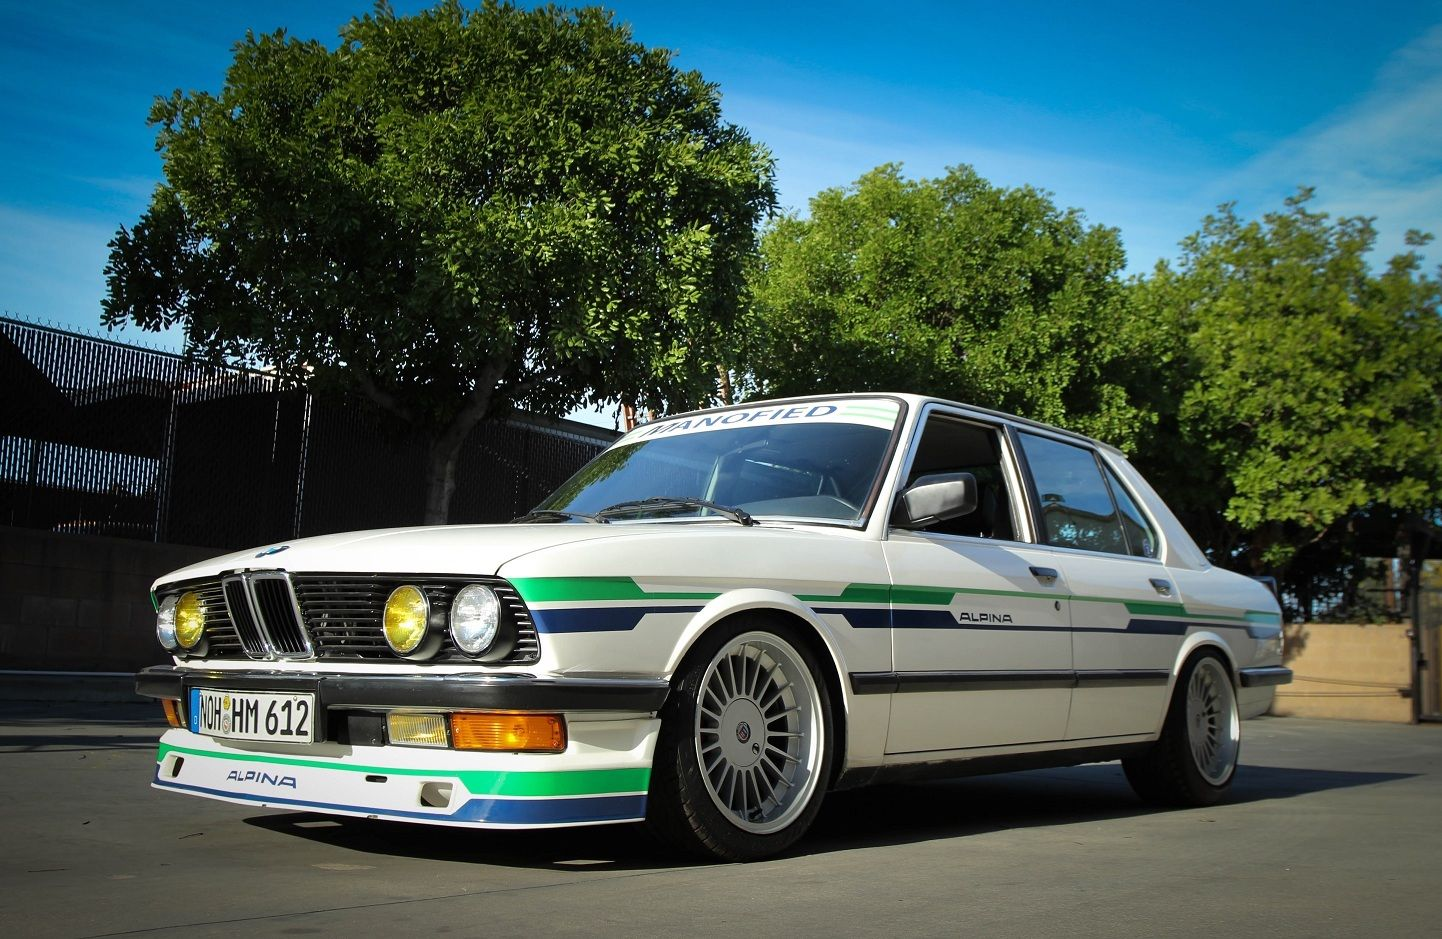 1988 bmw 535i e28 alpina b9 inspired by manofied racing ser 012 classic bmw 5 series 1988 for. Black Bedroom Furniture Sets. Home Design Ideas